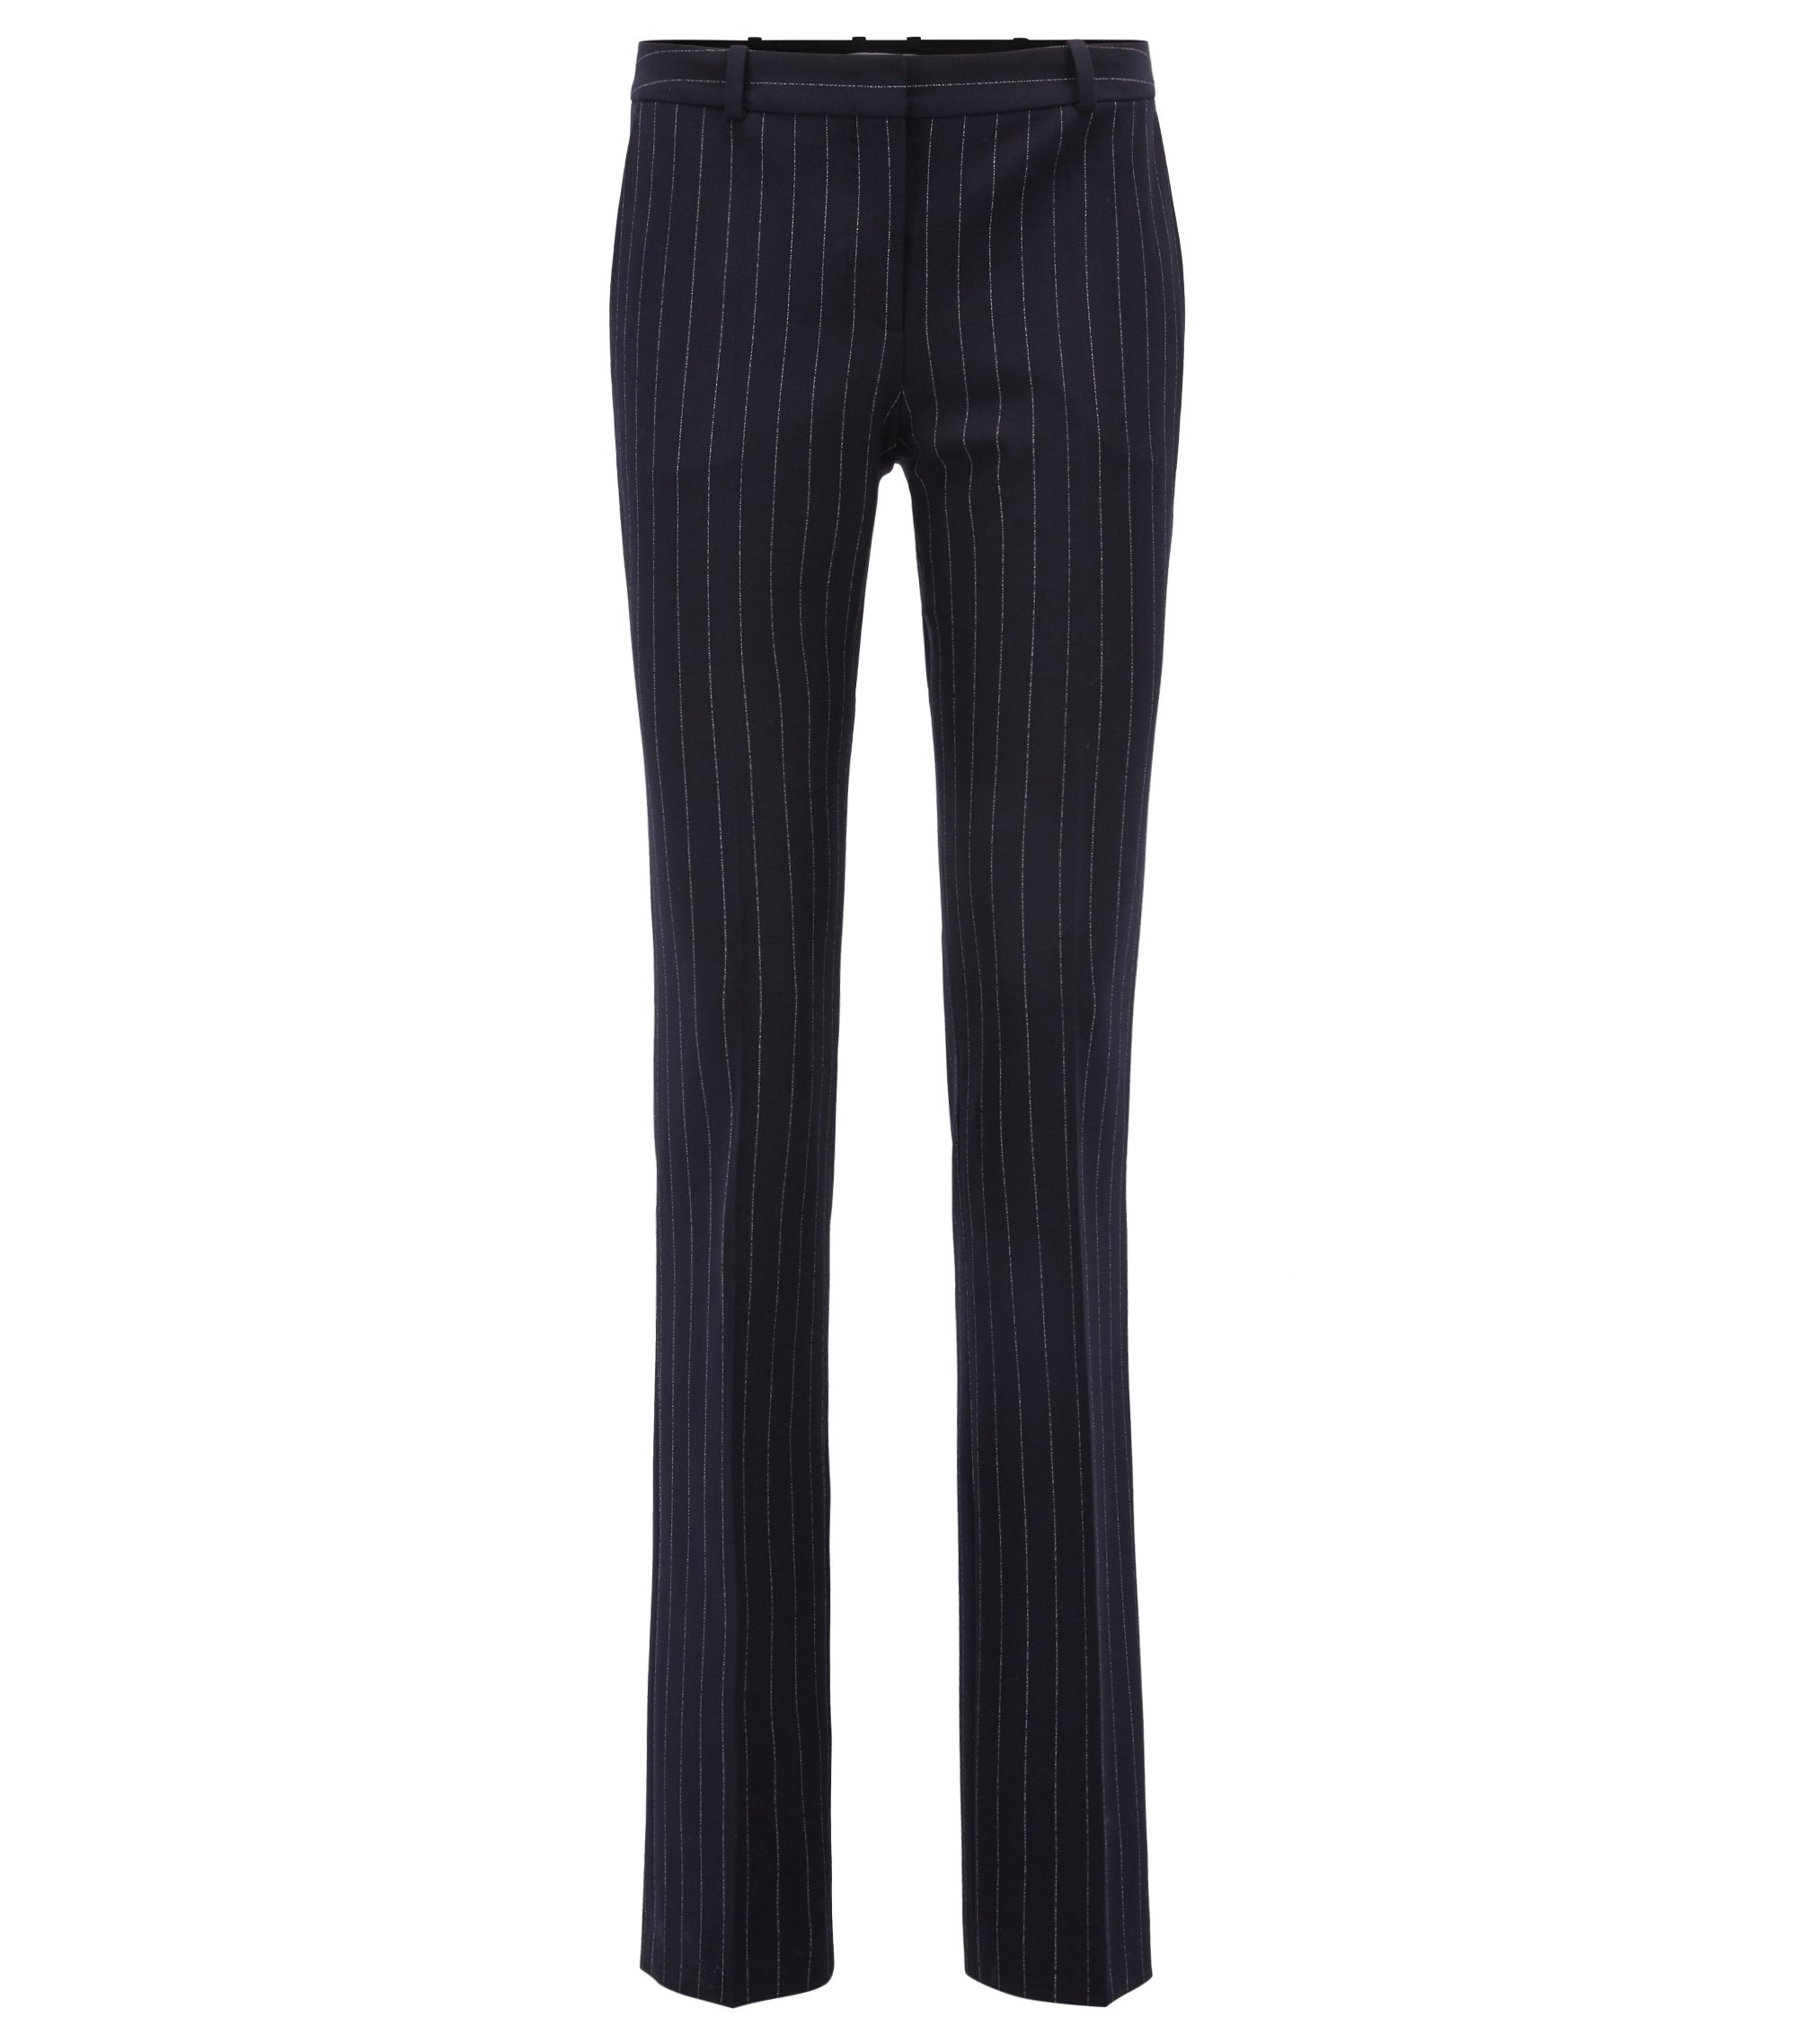 Regular-fit pinstripe trousers in stretch fabric, Patterned